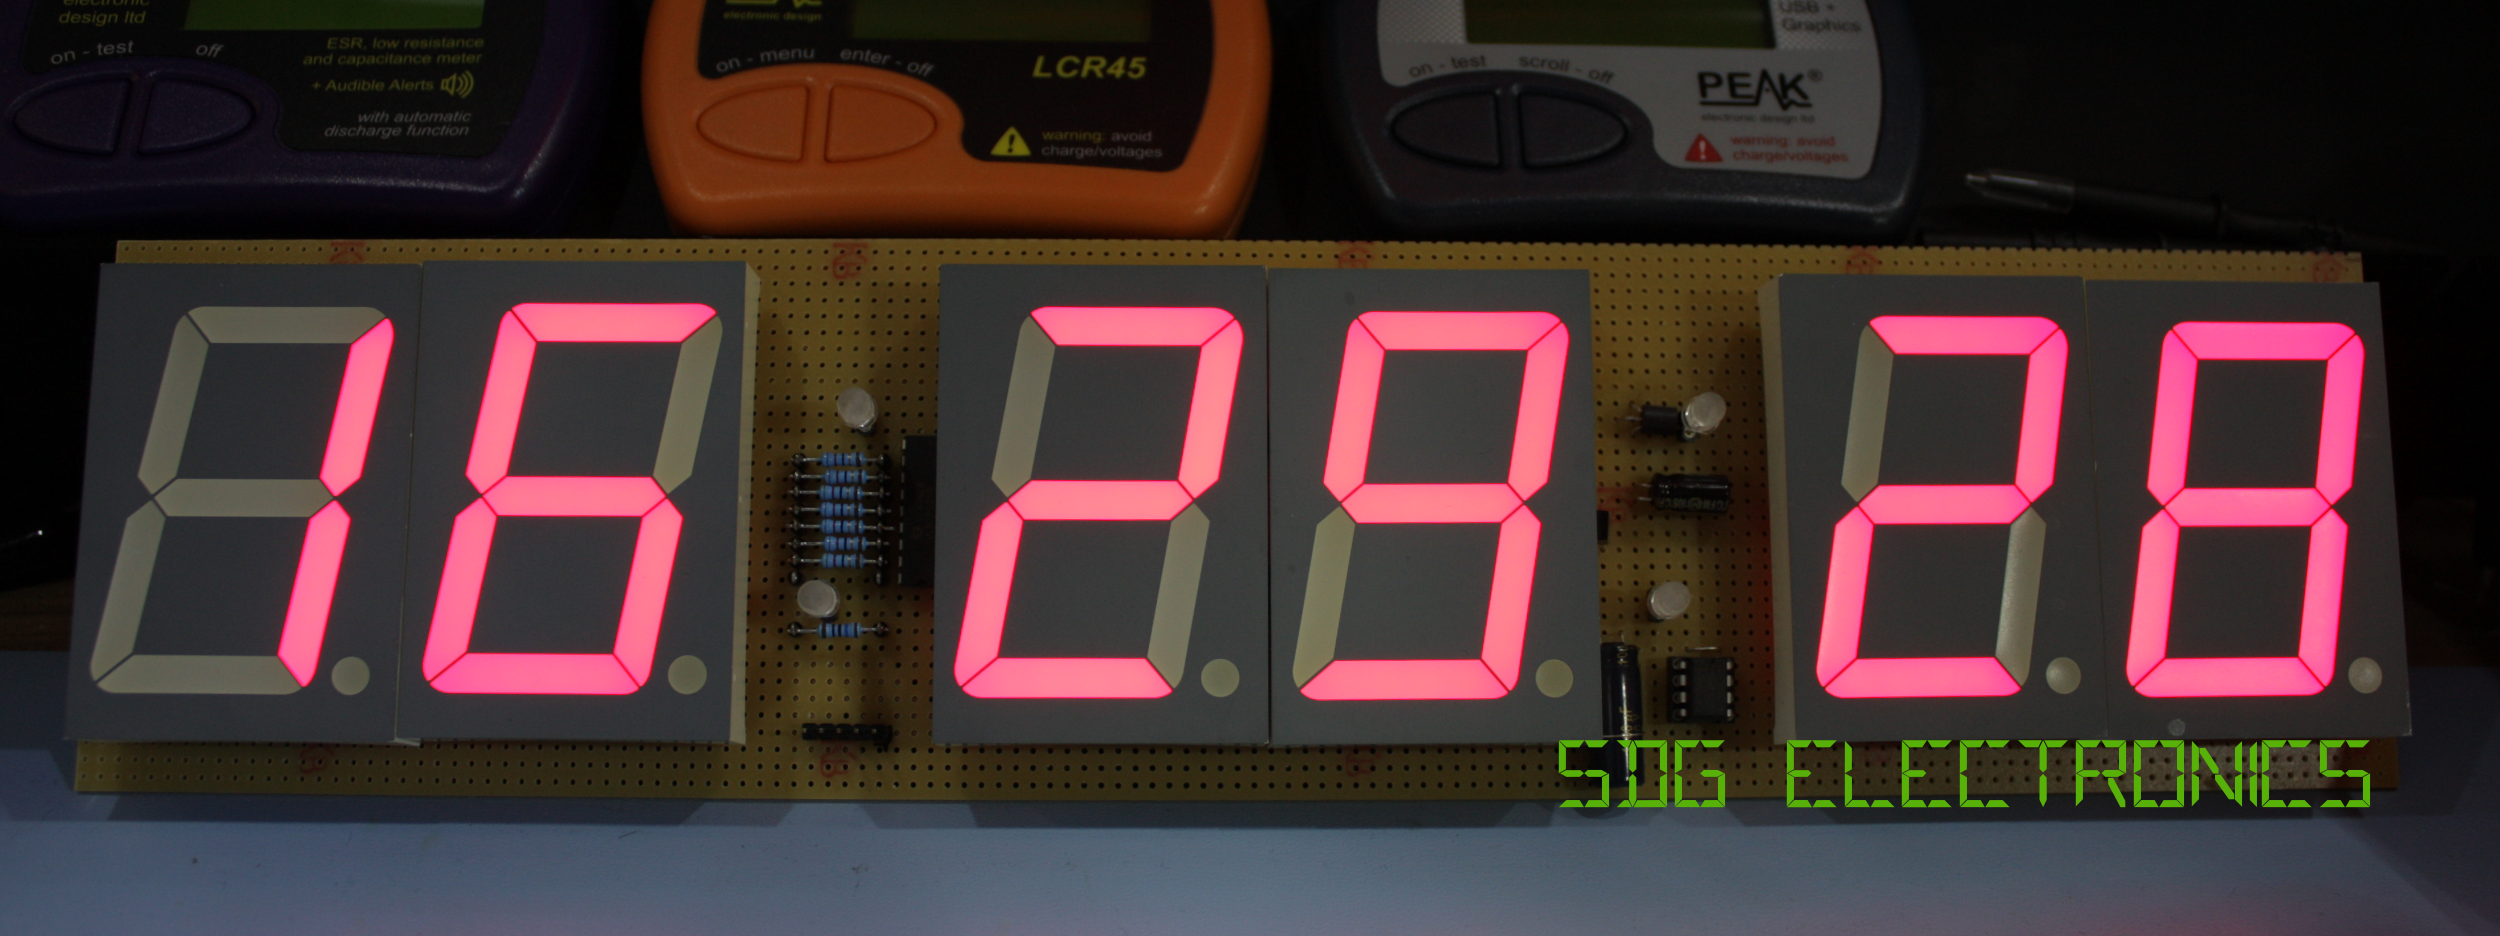 digit led clock sdg electronics 6 digit led clock